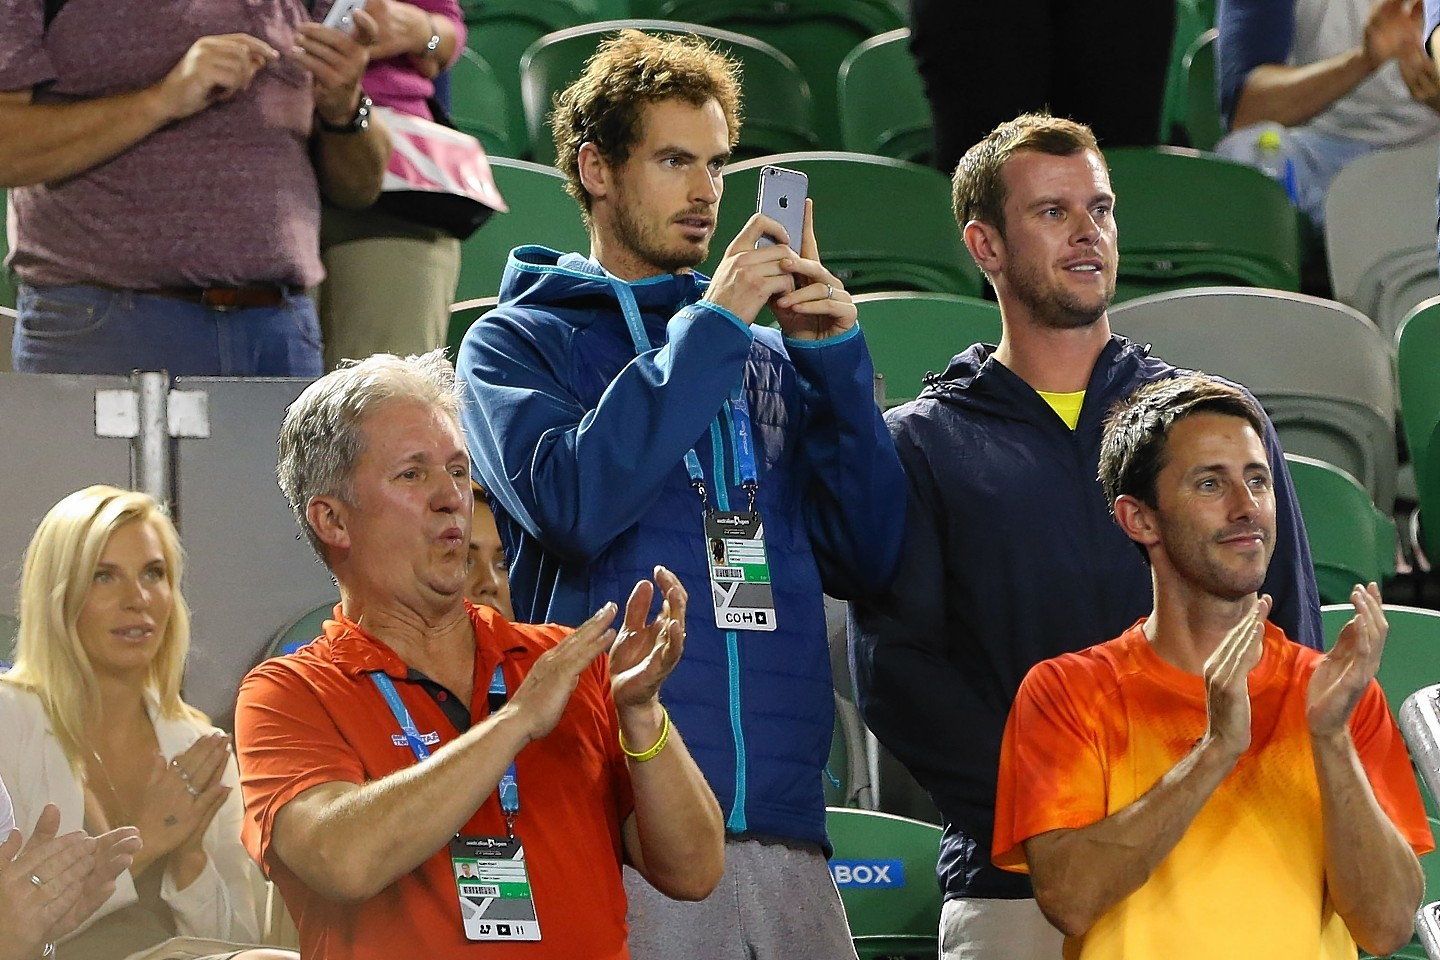 Murray was in the crowd, taking pictures as his brother, Jamie, won the male doubles title at the start of the weekend